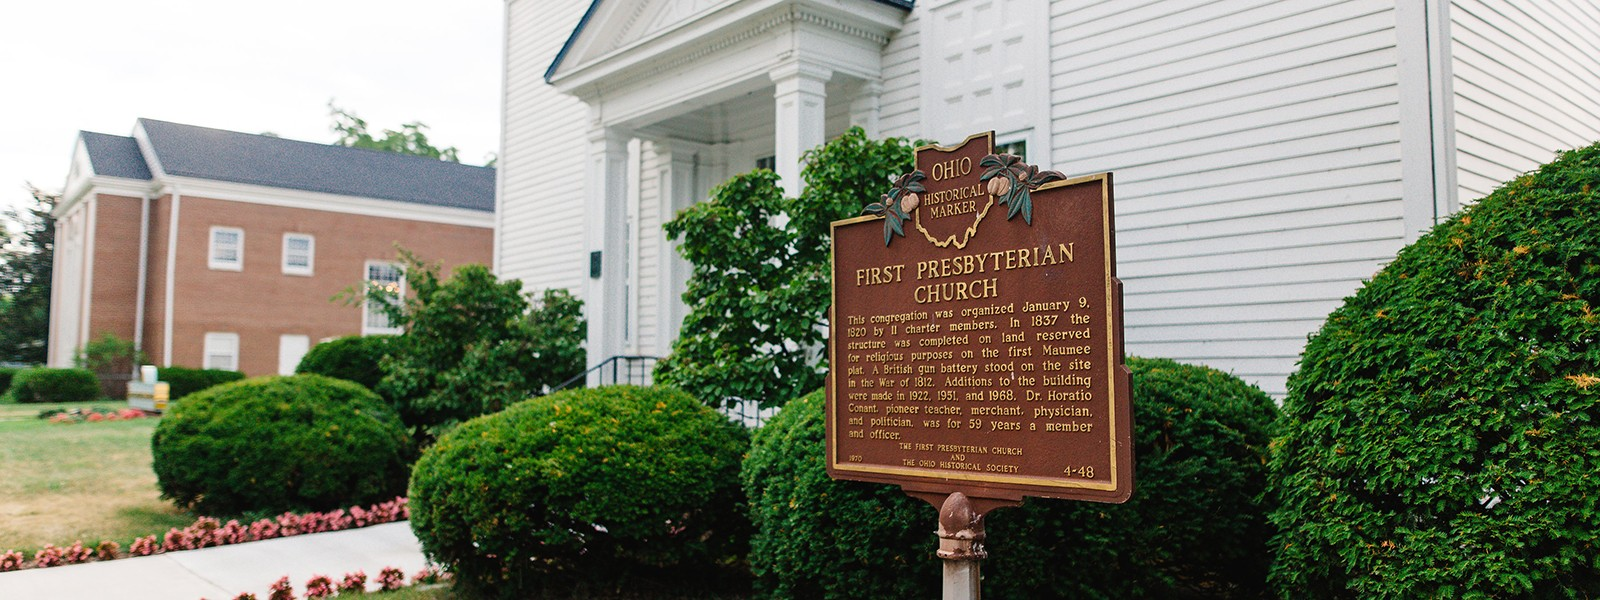 A historical marker in front of the church.